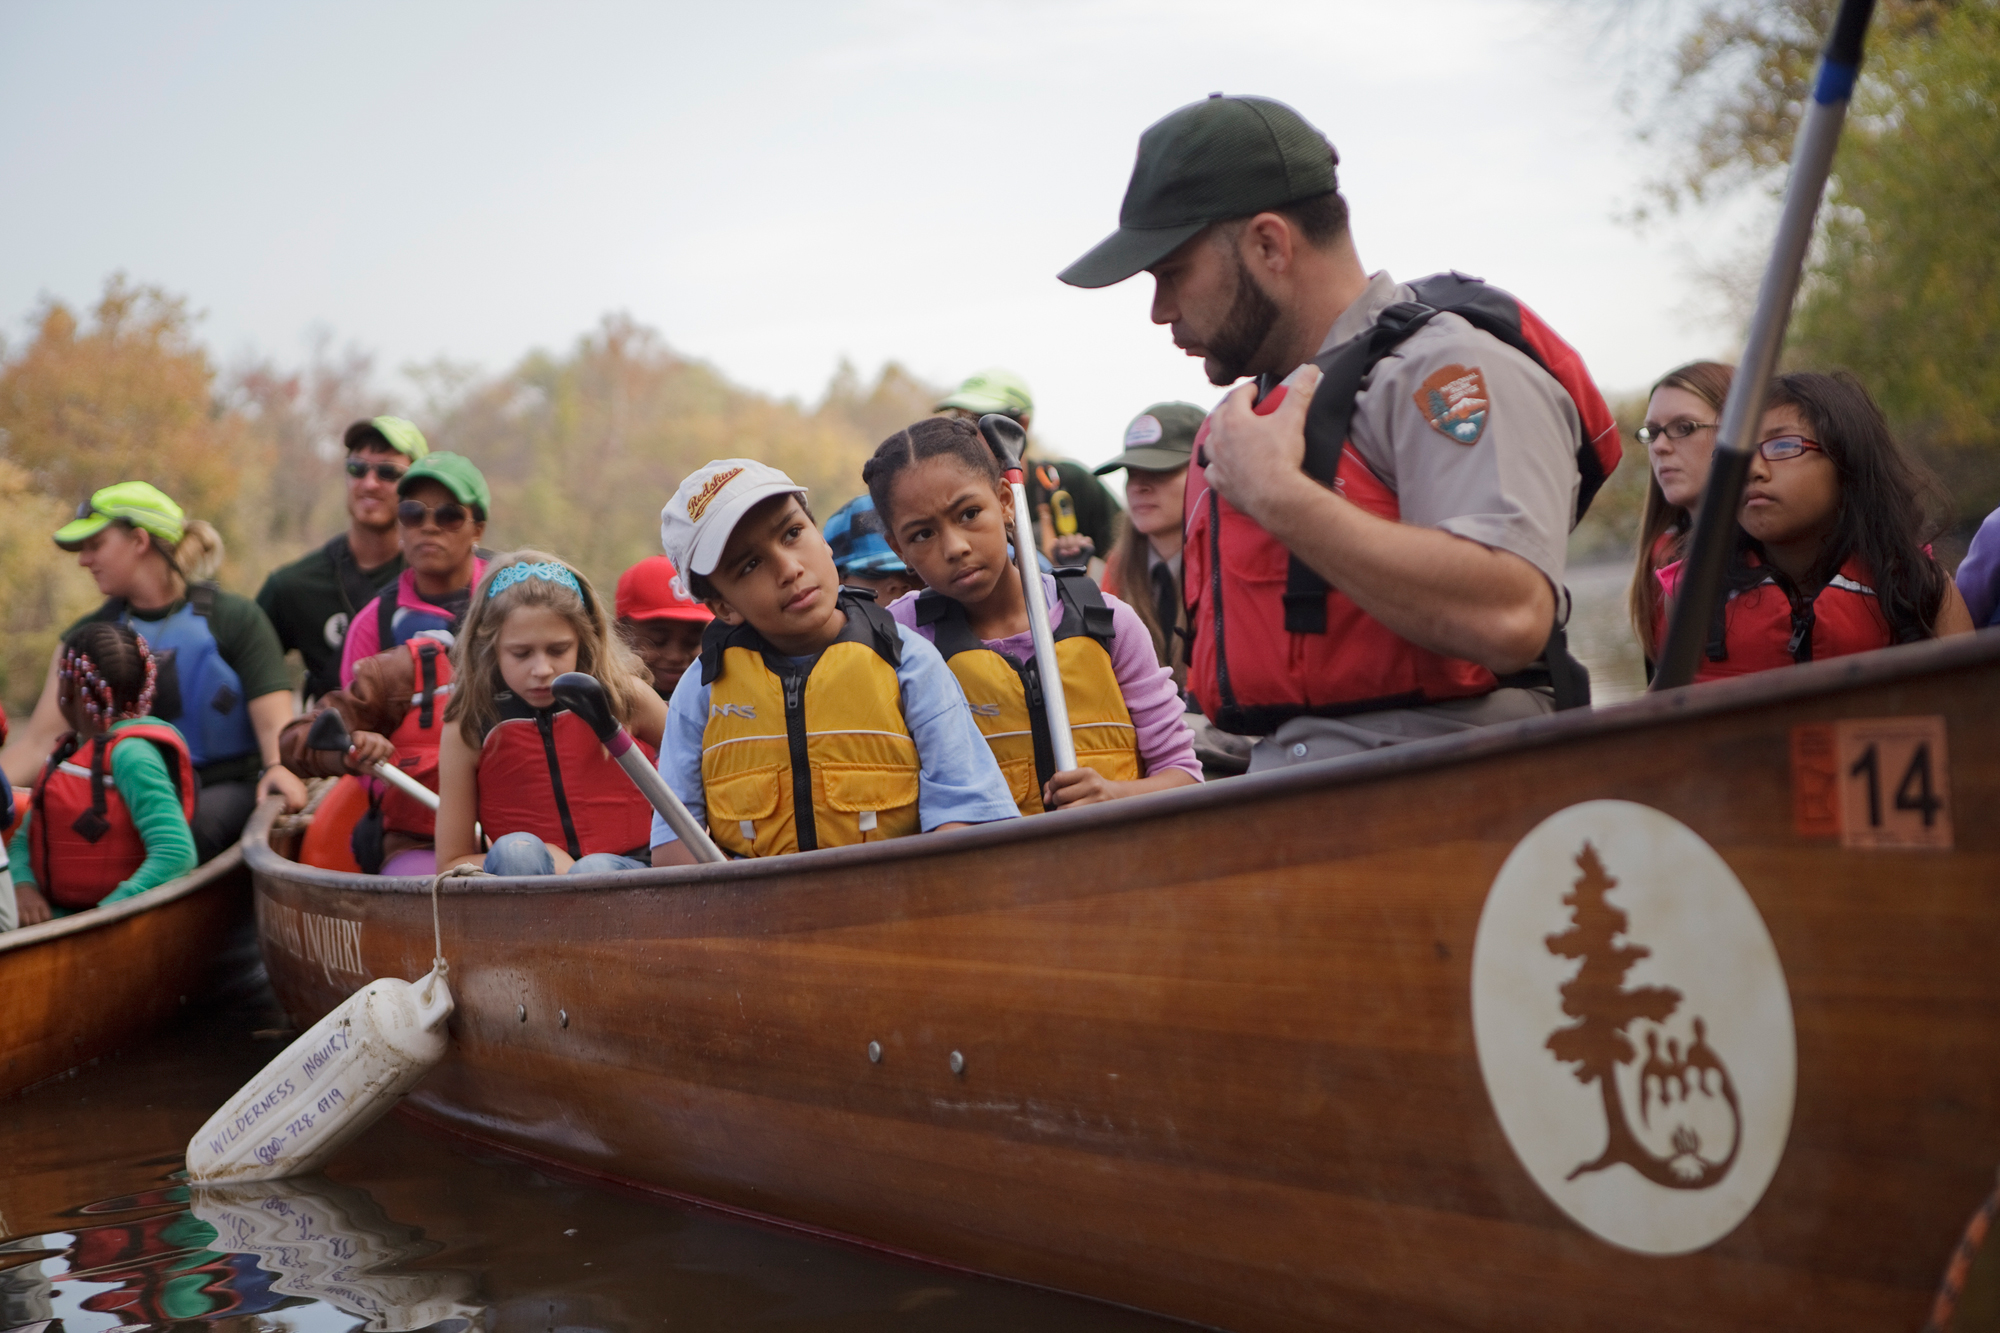 D.C. school children canoe the Anacostia through a non-profit called Wilderness Inquiry, which helps create opportunities for urban kids to spend time in nature in October, 2012.